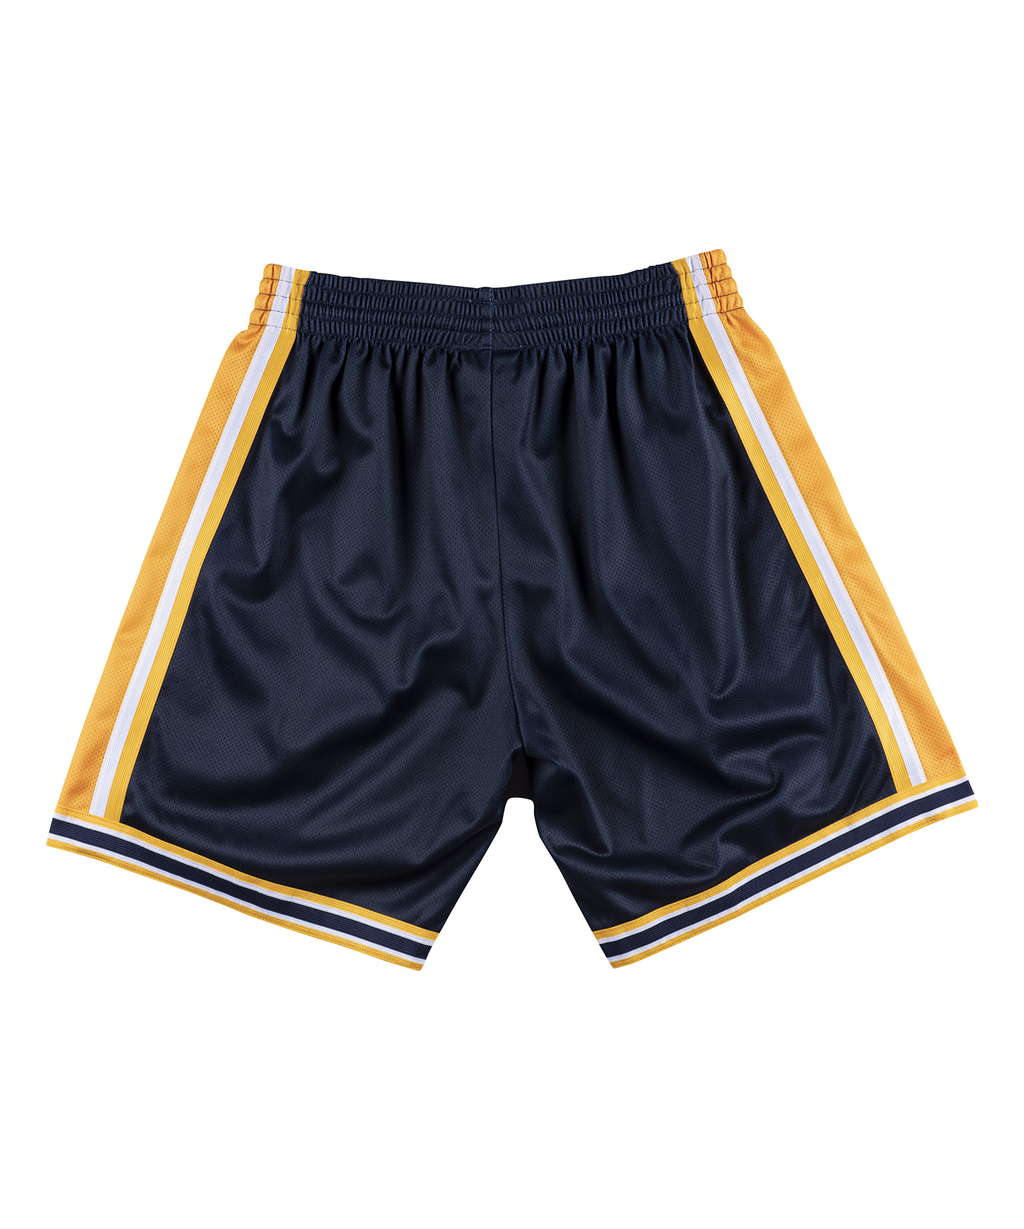 Golden State Warriors Big Face Shorts 2000